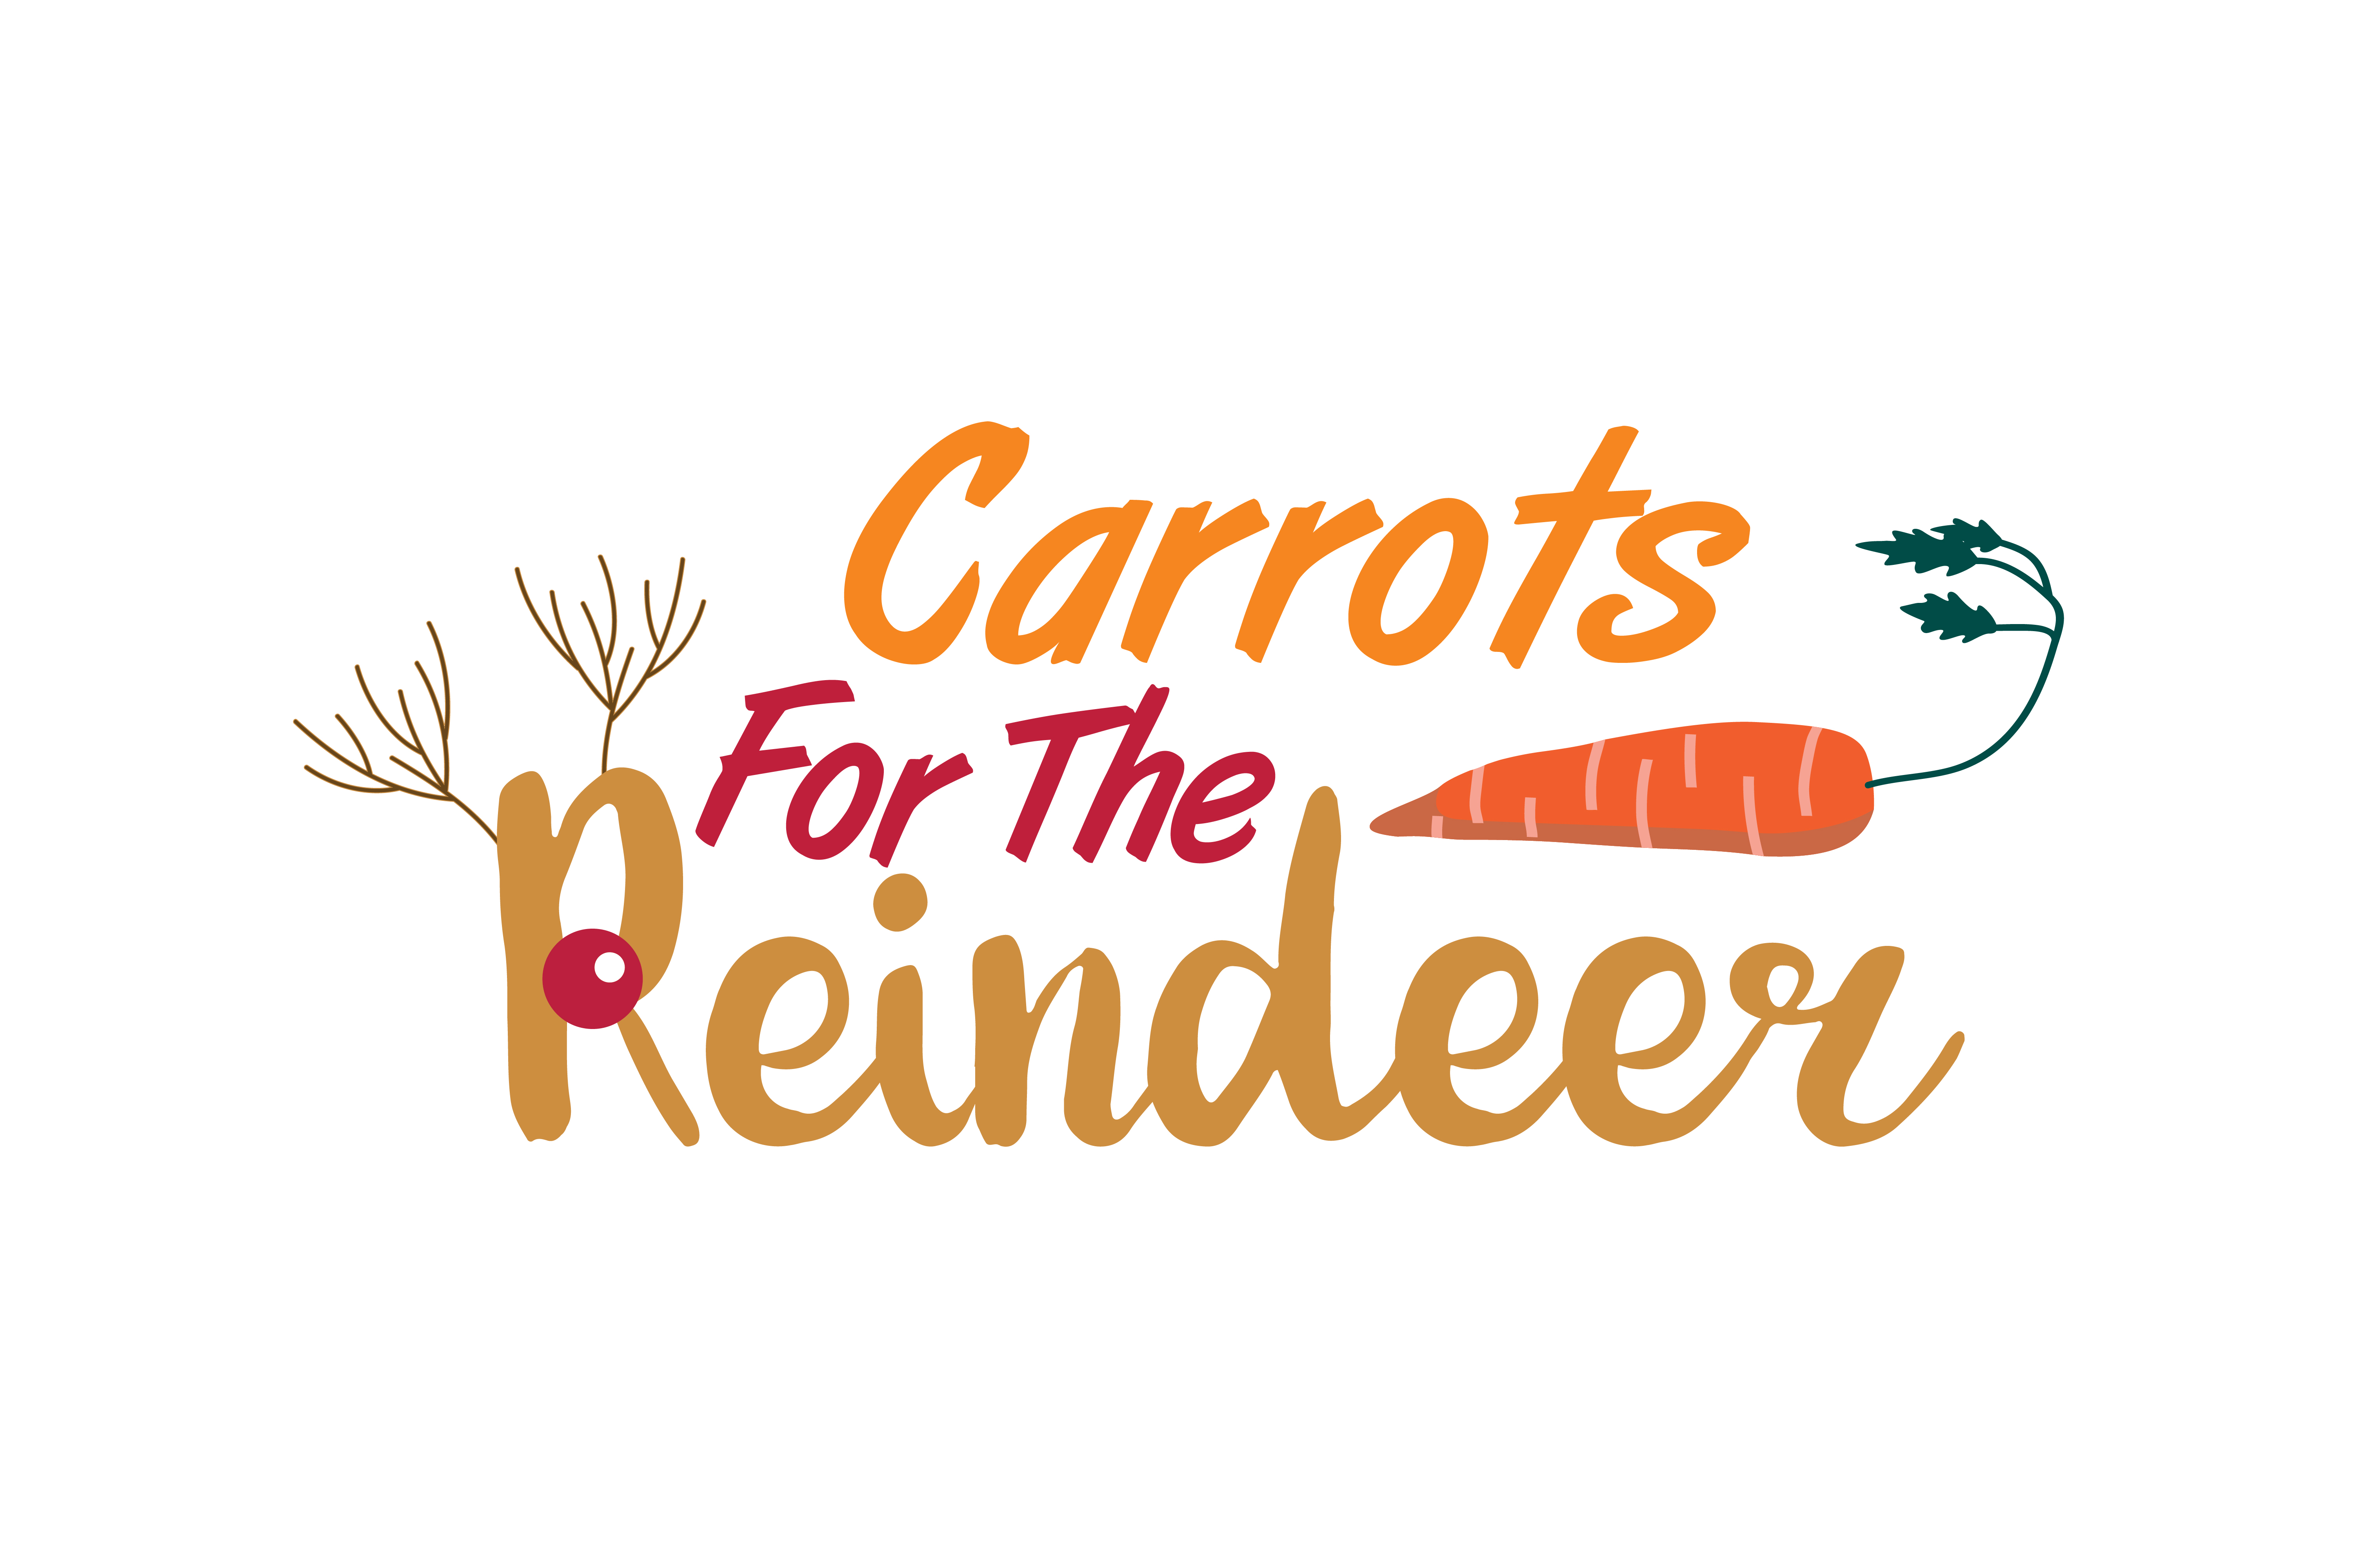 Download Free Carrots For The Reindeer Svg Cut Graphic By Thelucky Creative for Cricut Explore, Silhouette and other cutting machines.